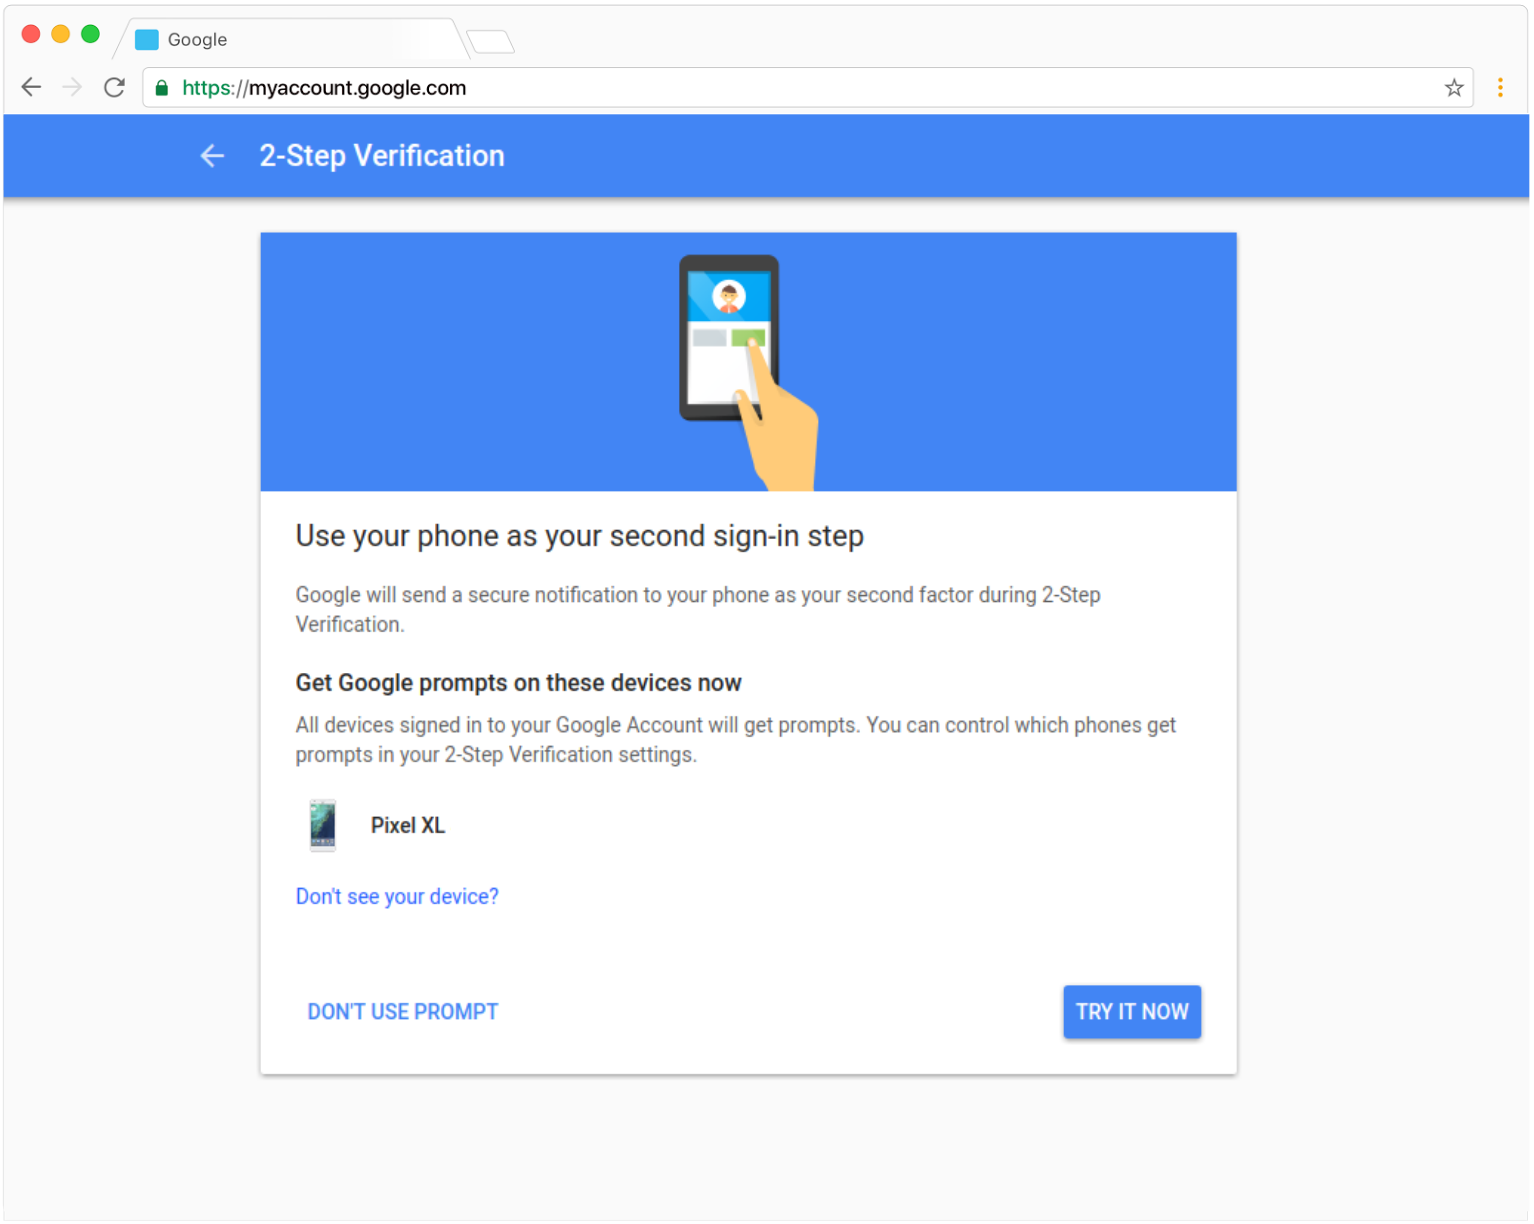 G Suite Updates Blog Making Google Prompt The Primary Choice For 2